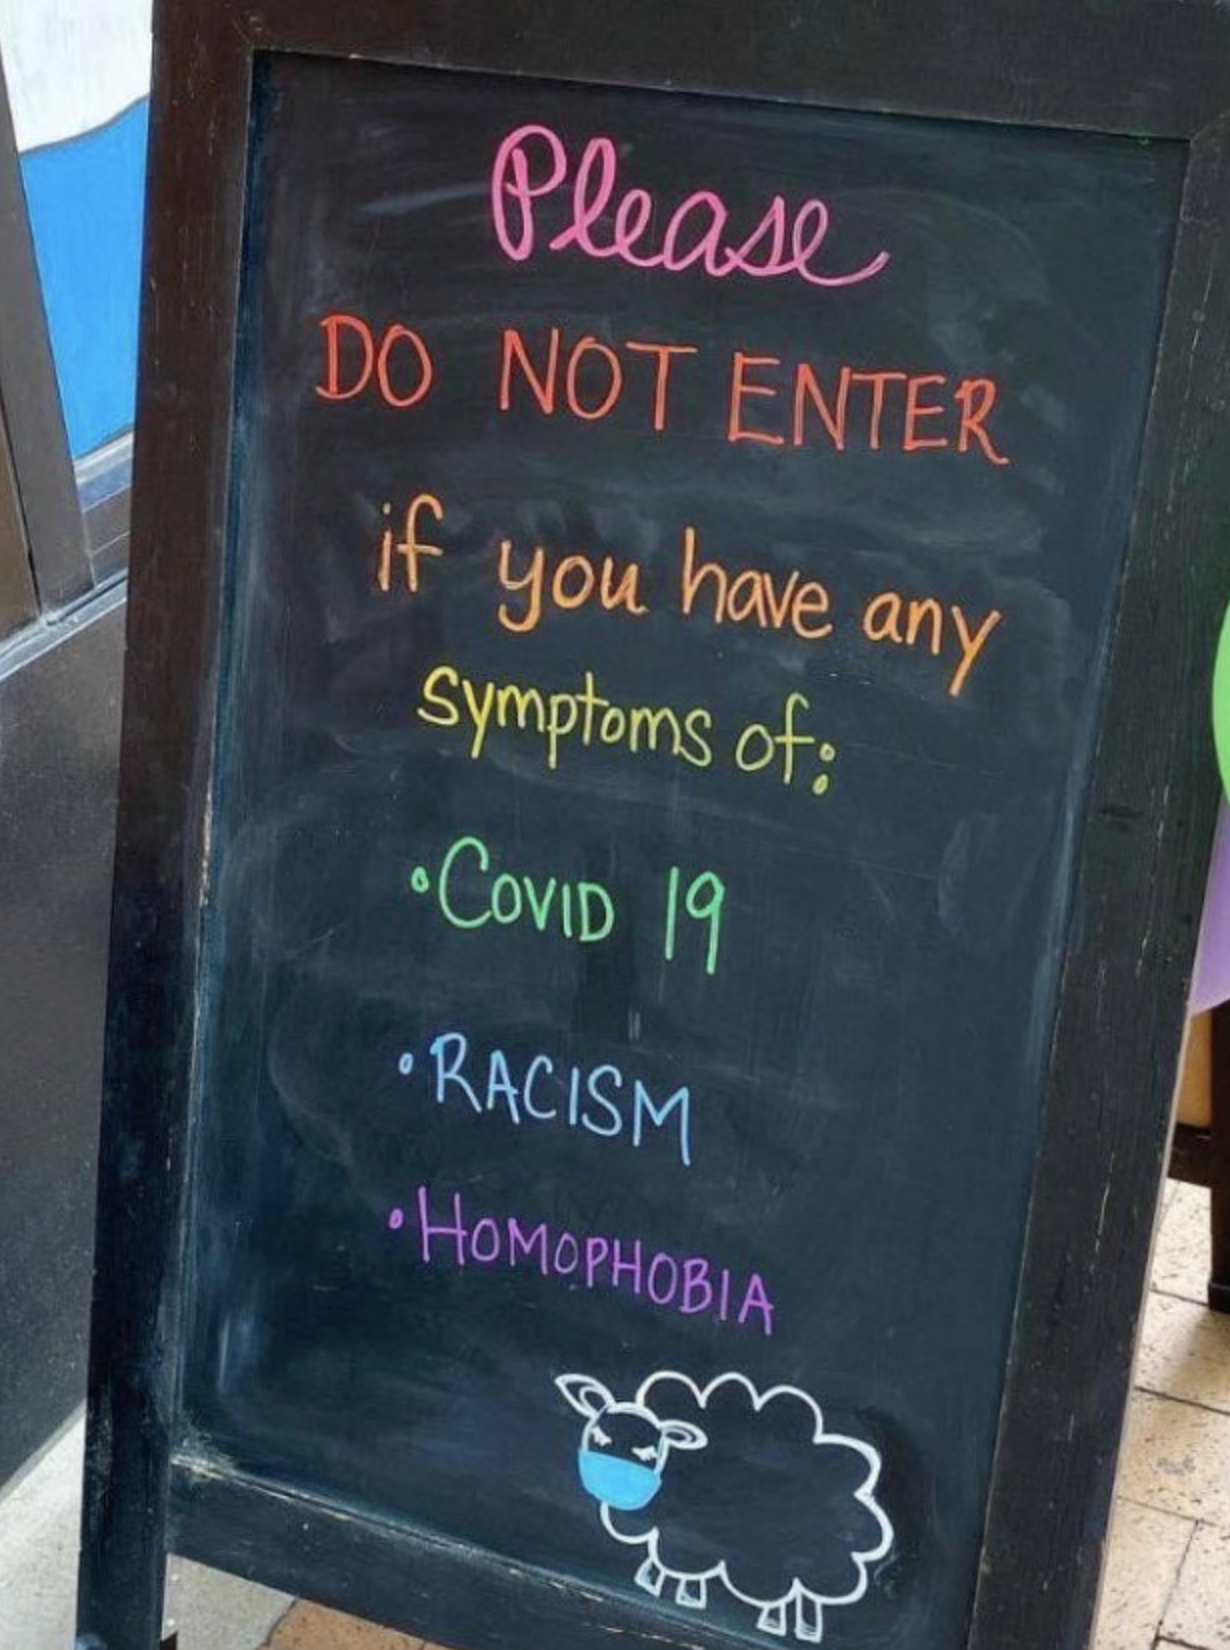 Sign reading please don't enter with symptoms of covid-19, racism, homophobia